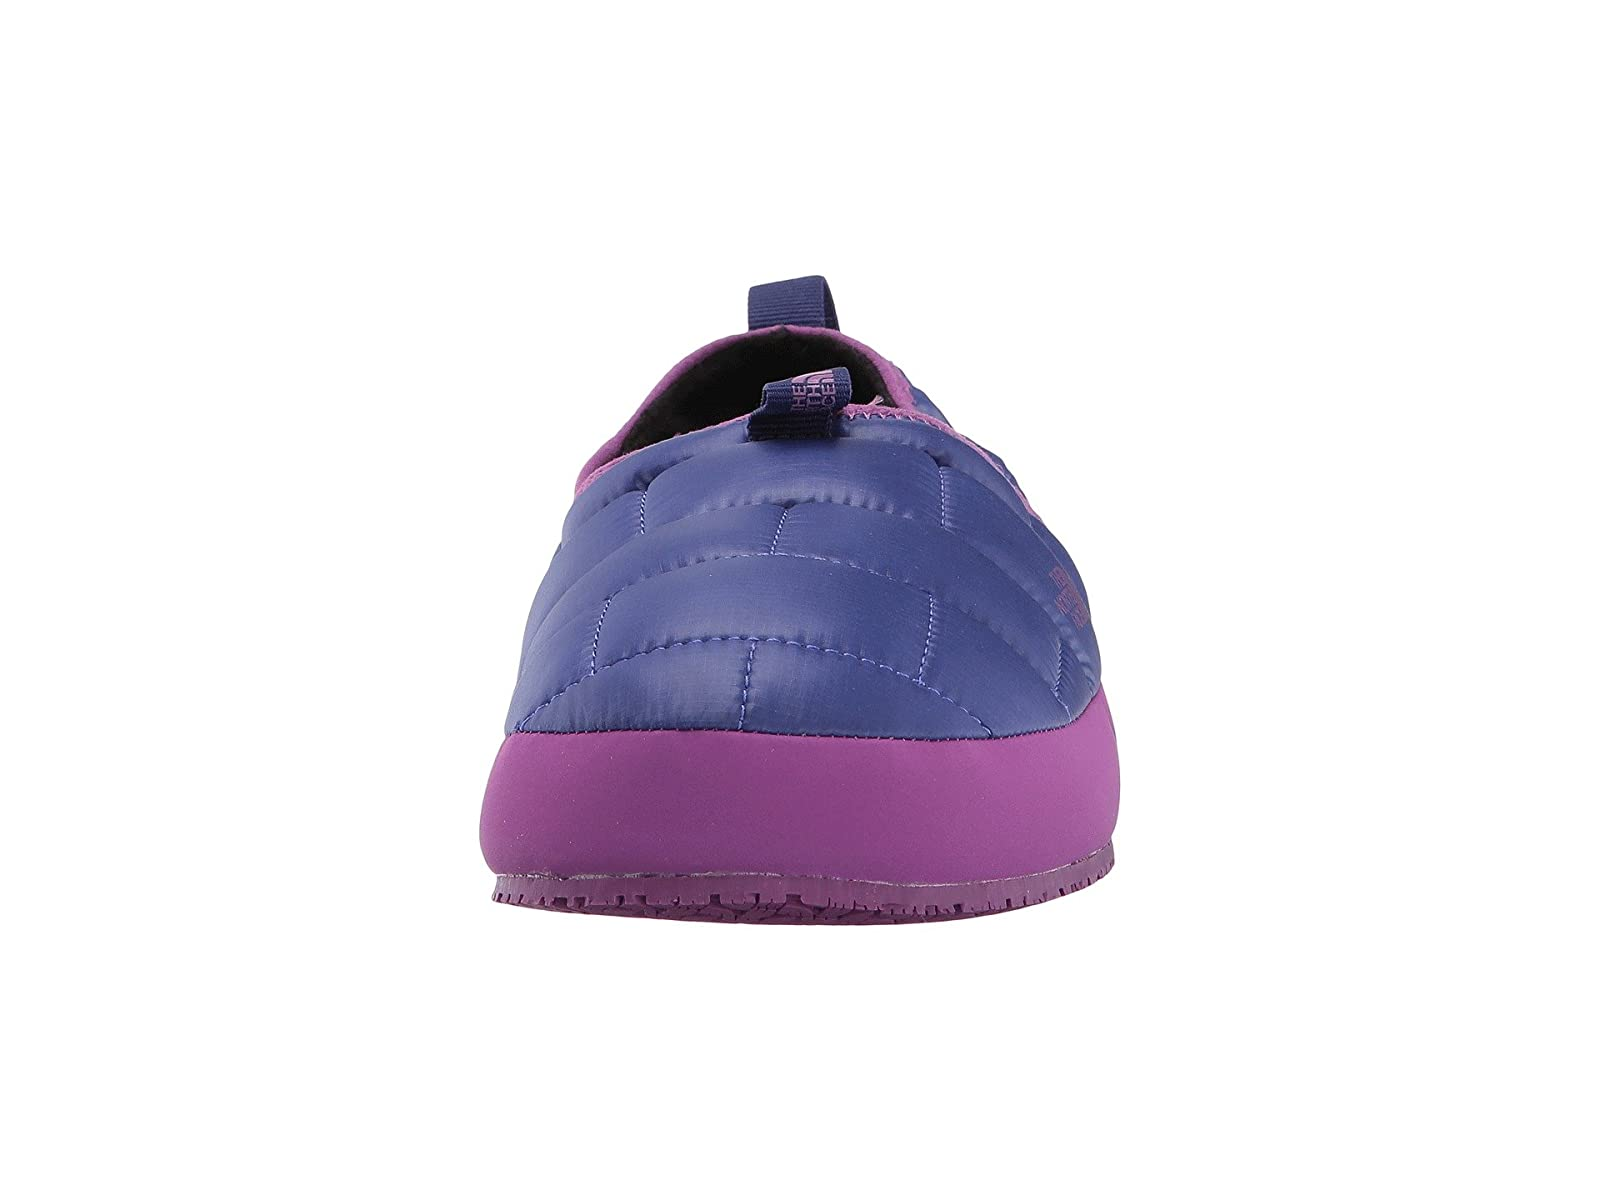 The North Face Kids Thermal Tent Mule Mule Mule II (Toddler/Little Kid/Big Kid) dbcce6